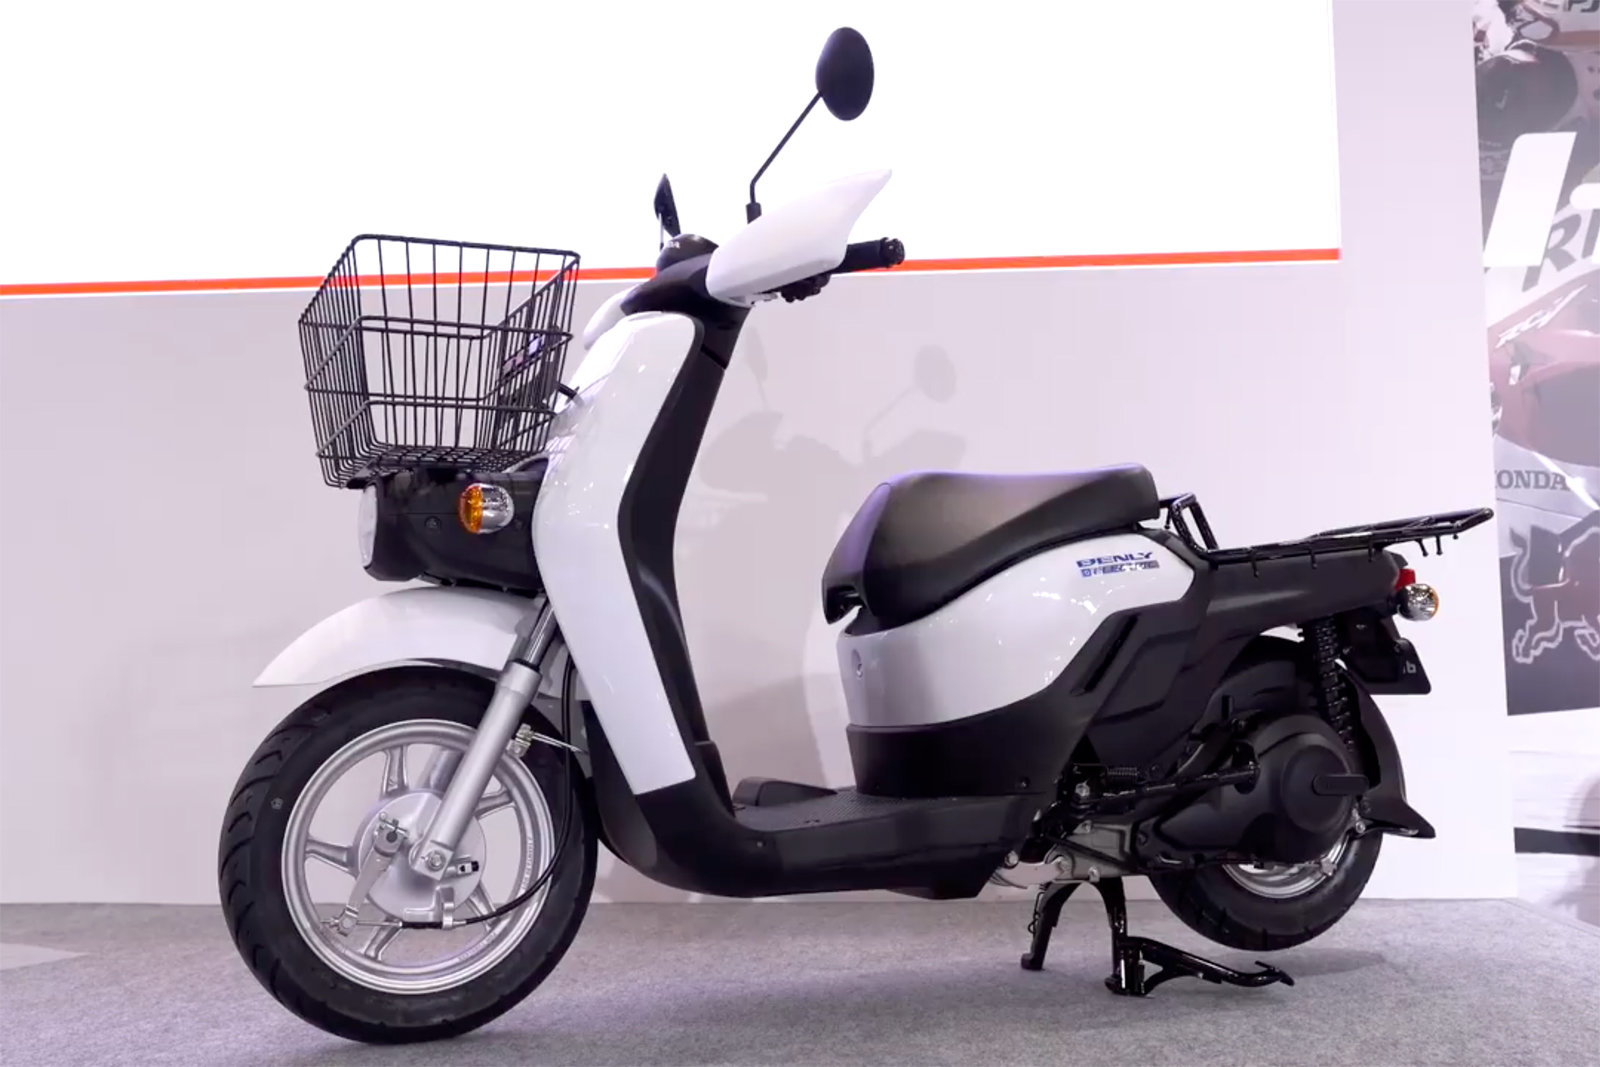 Honda Displays Electric Motorcycle And Scooter At Tokyo Motor Show